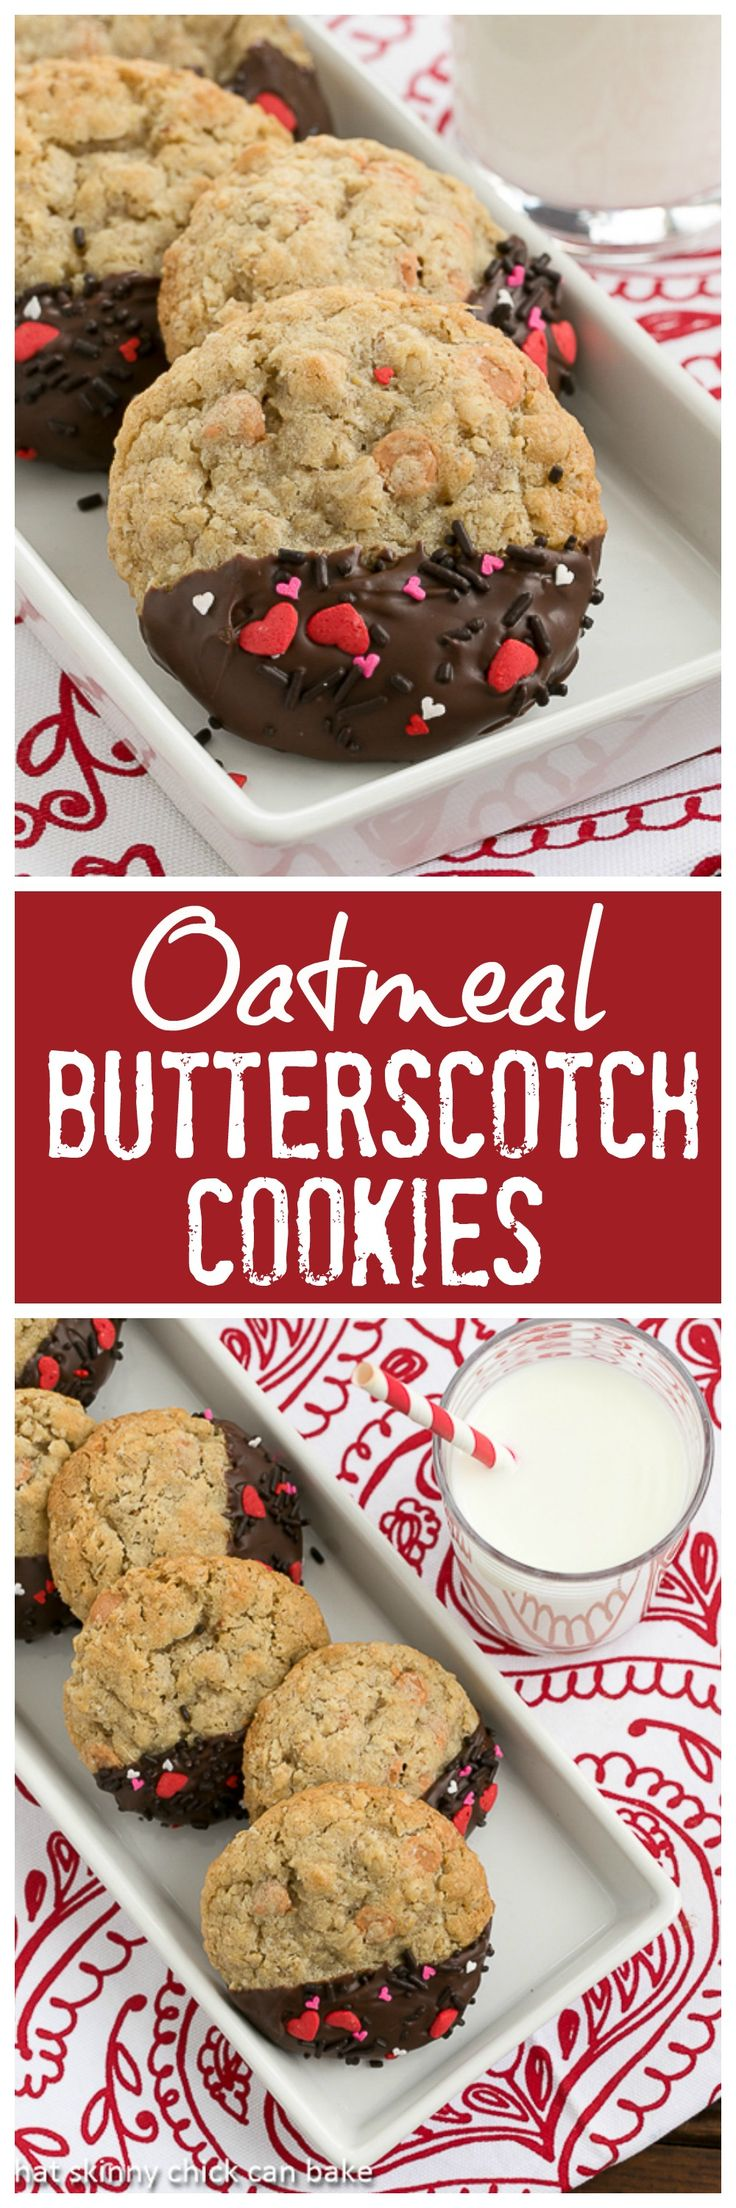 Big Dipper Oatmeal Butterscotch Cookies | Chewy Oatmeal Cookies Chock Full of Butterscotch Morsels @lizzydo